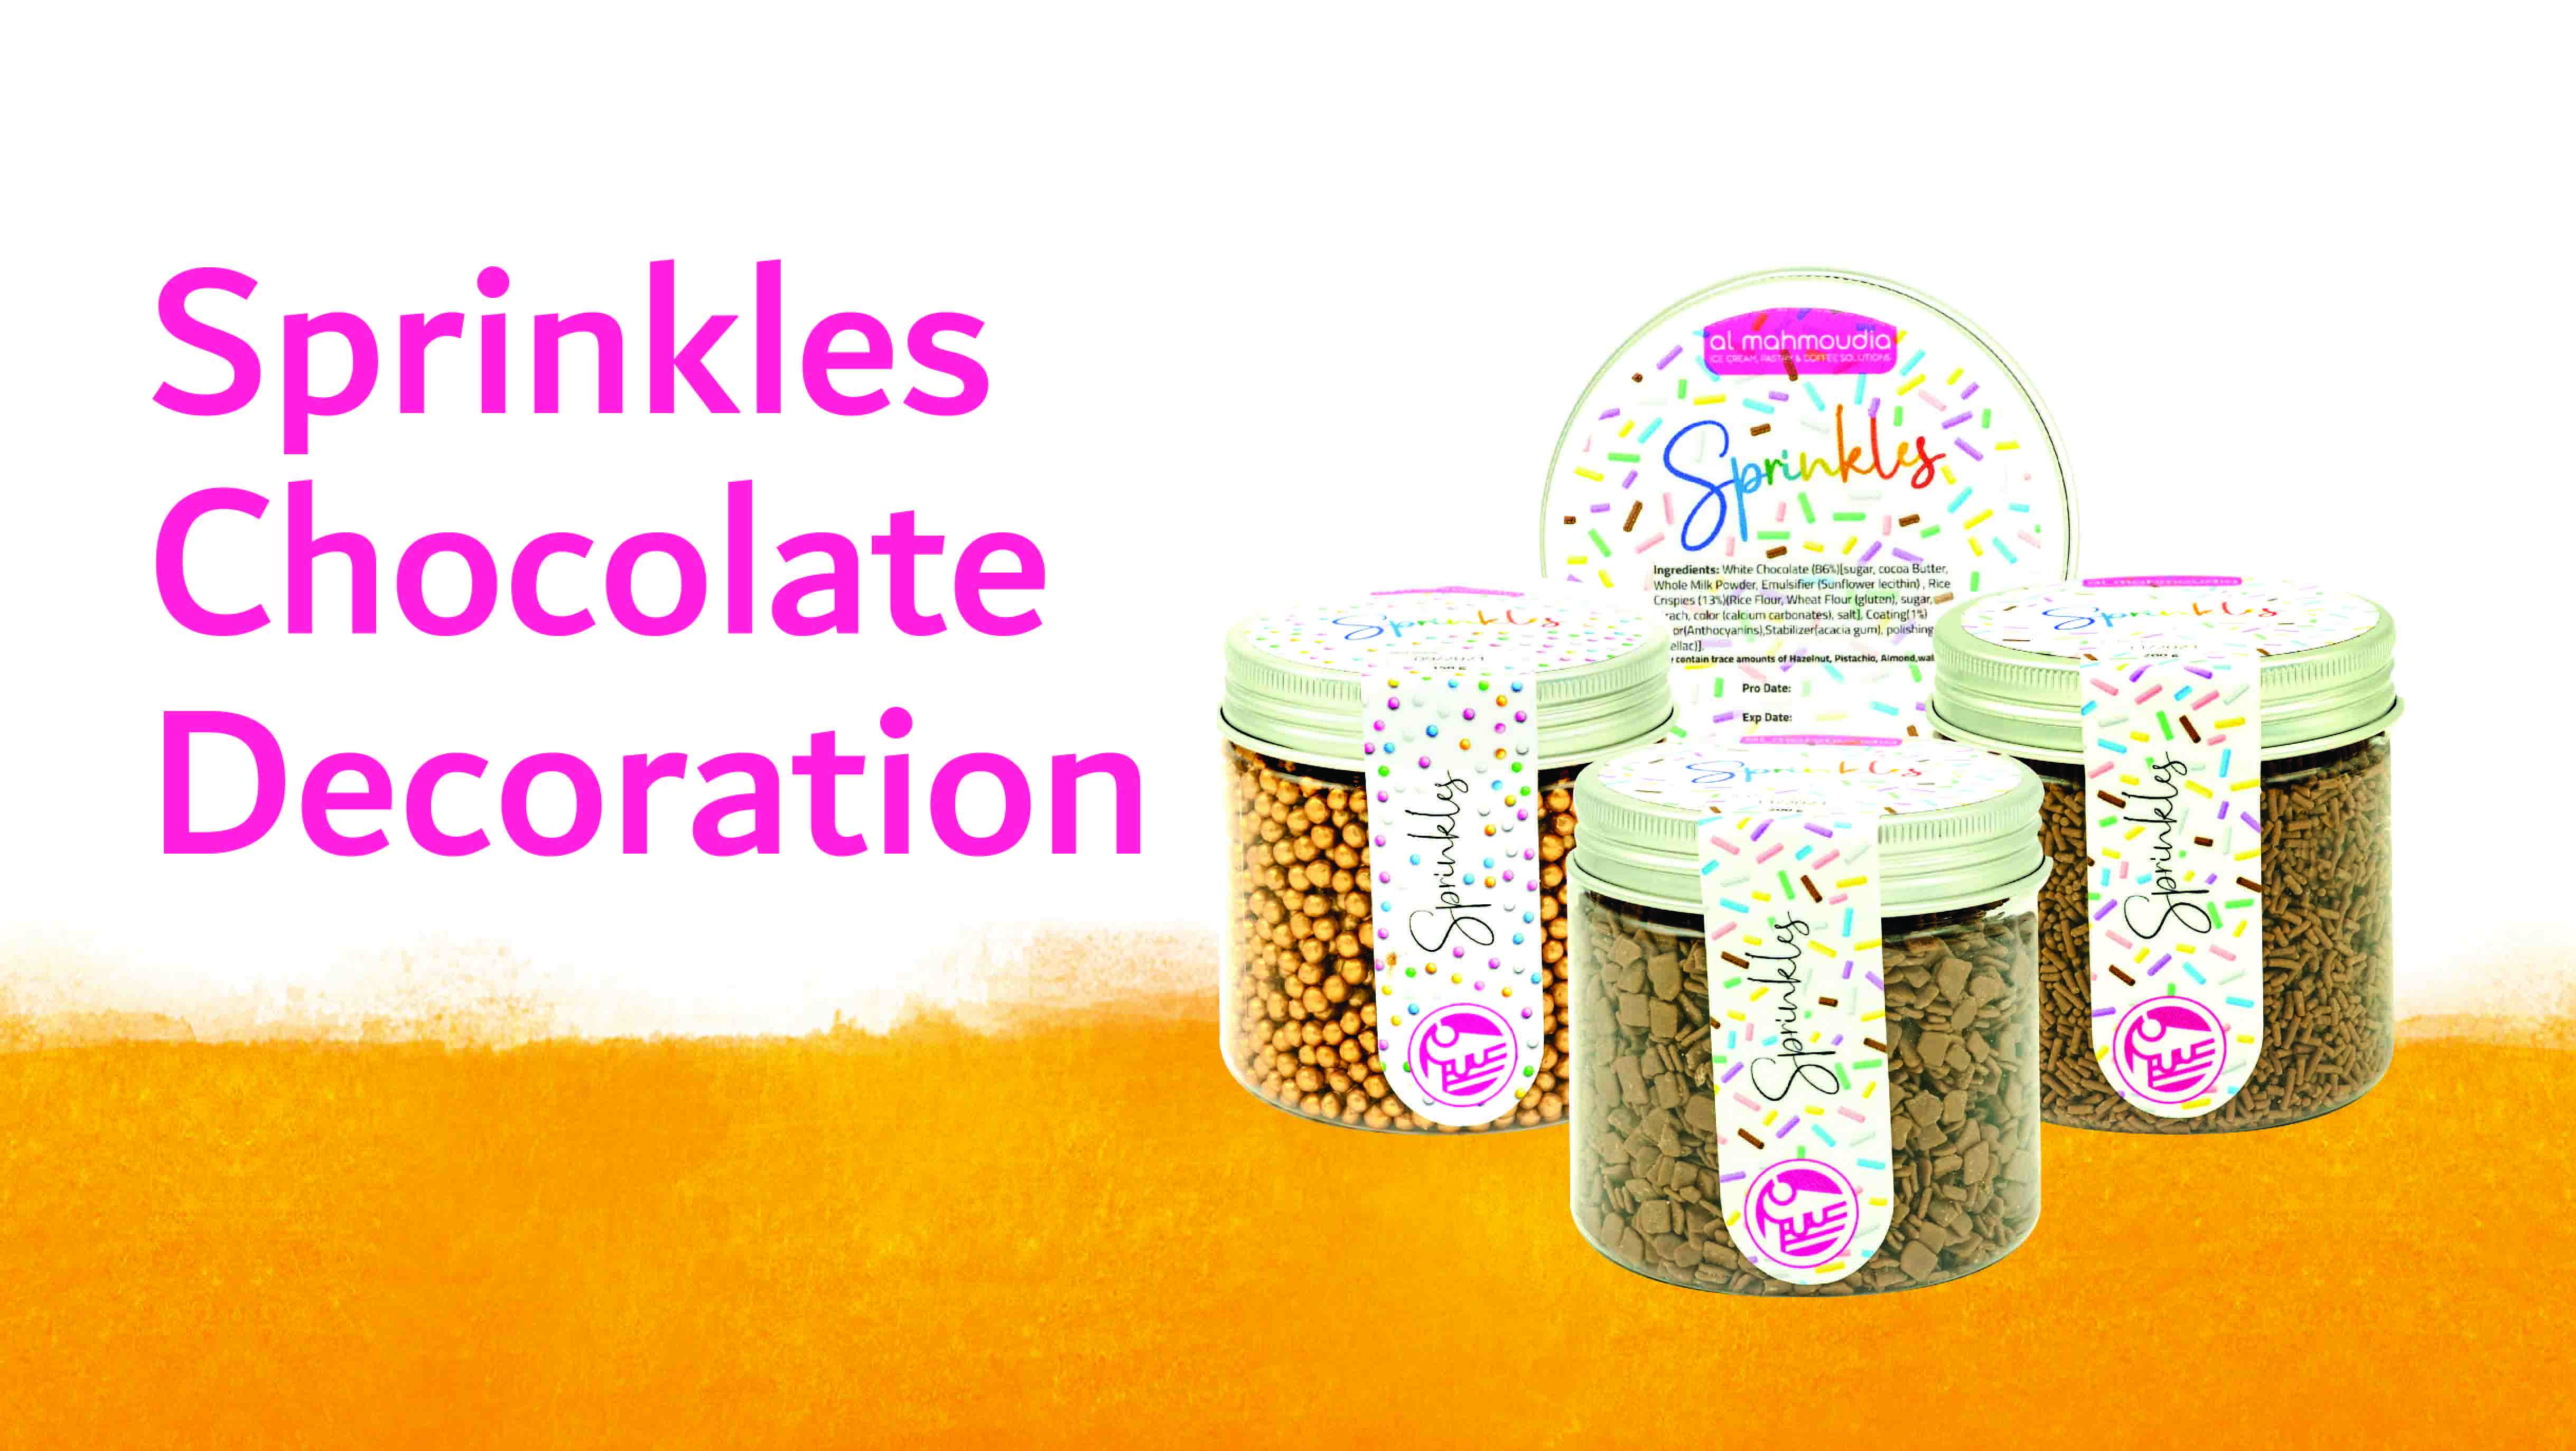 Sprinkles and Chocolate decoration